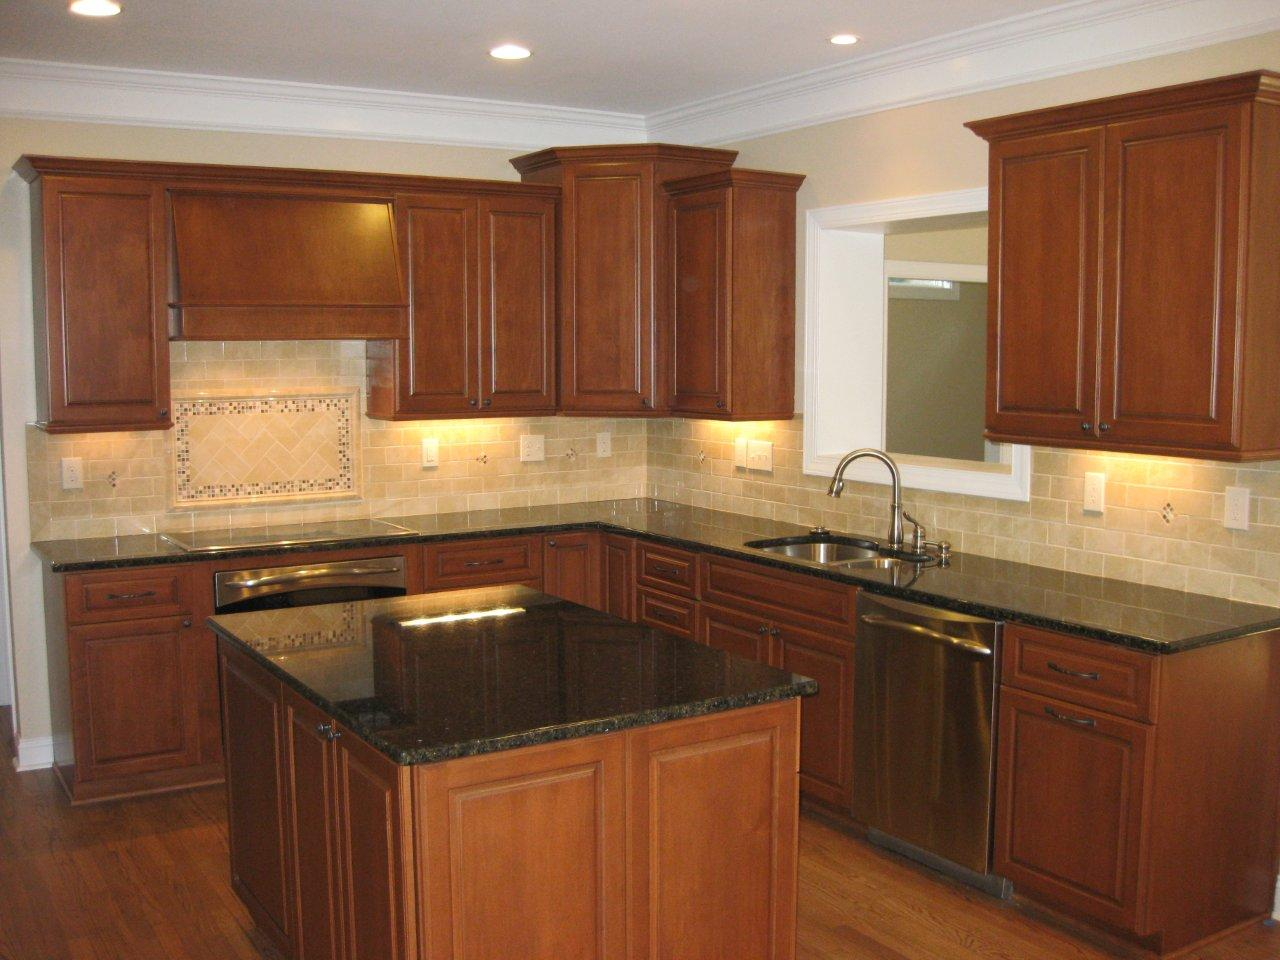 how much is a kitchen remodel cabinets kings does cost in charlotte nc